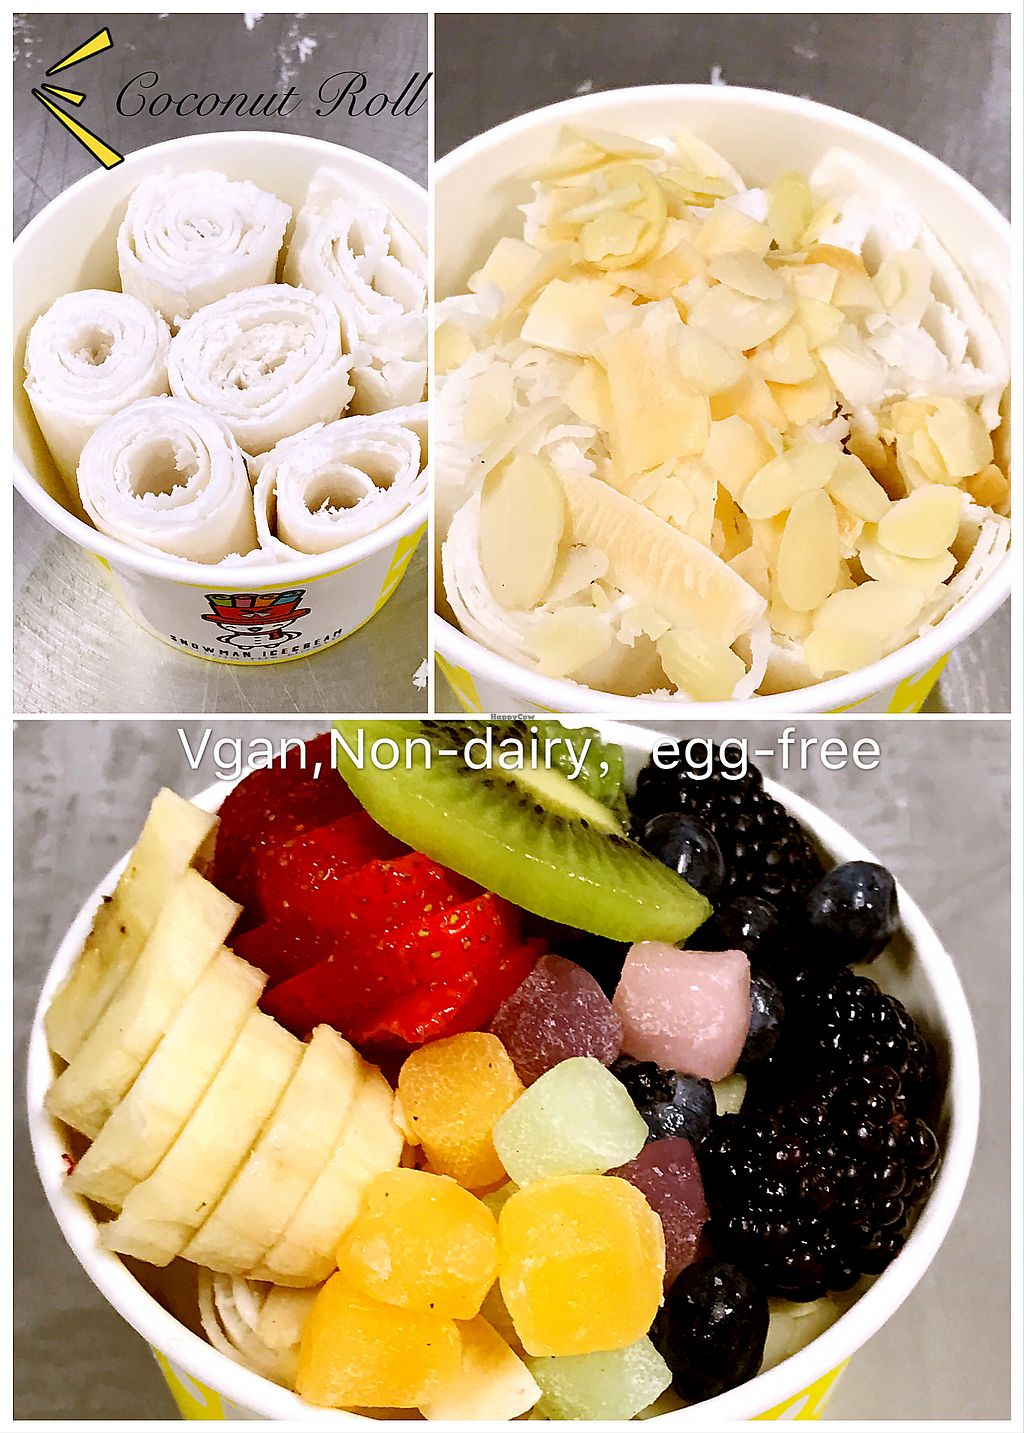 """Photo of Snowman Rolling Ice Cream  by <a href=""""/members/profile/JieLiang"""">JieLiang</a> <br/>vgan coconut ice cream <br/> September 6, 2017  - <a href='/contact/abuse/image/100399/301345'>Report</a>"""